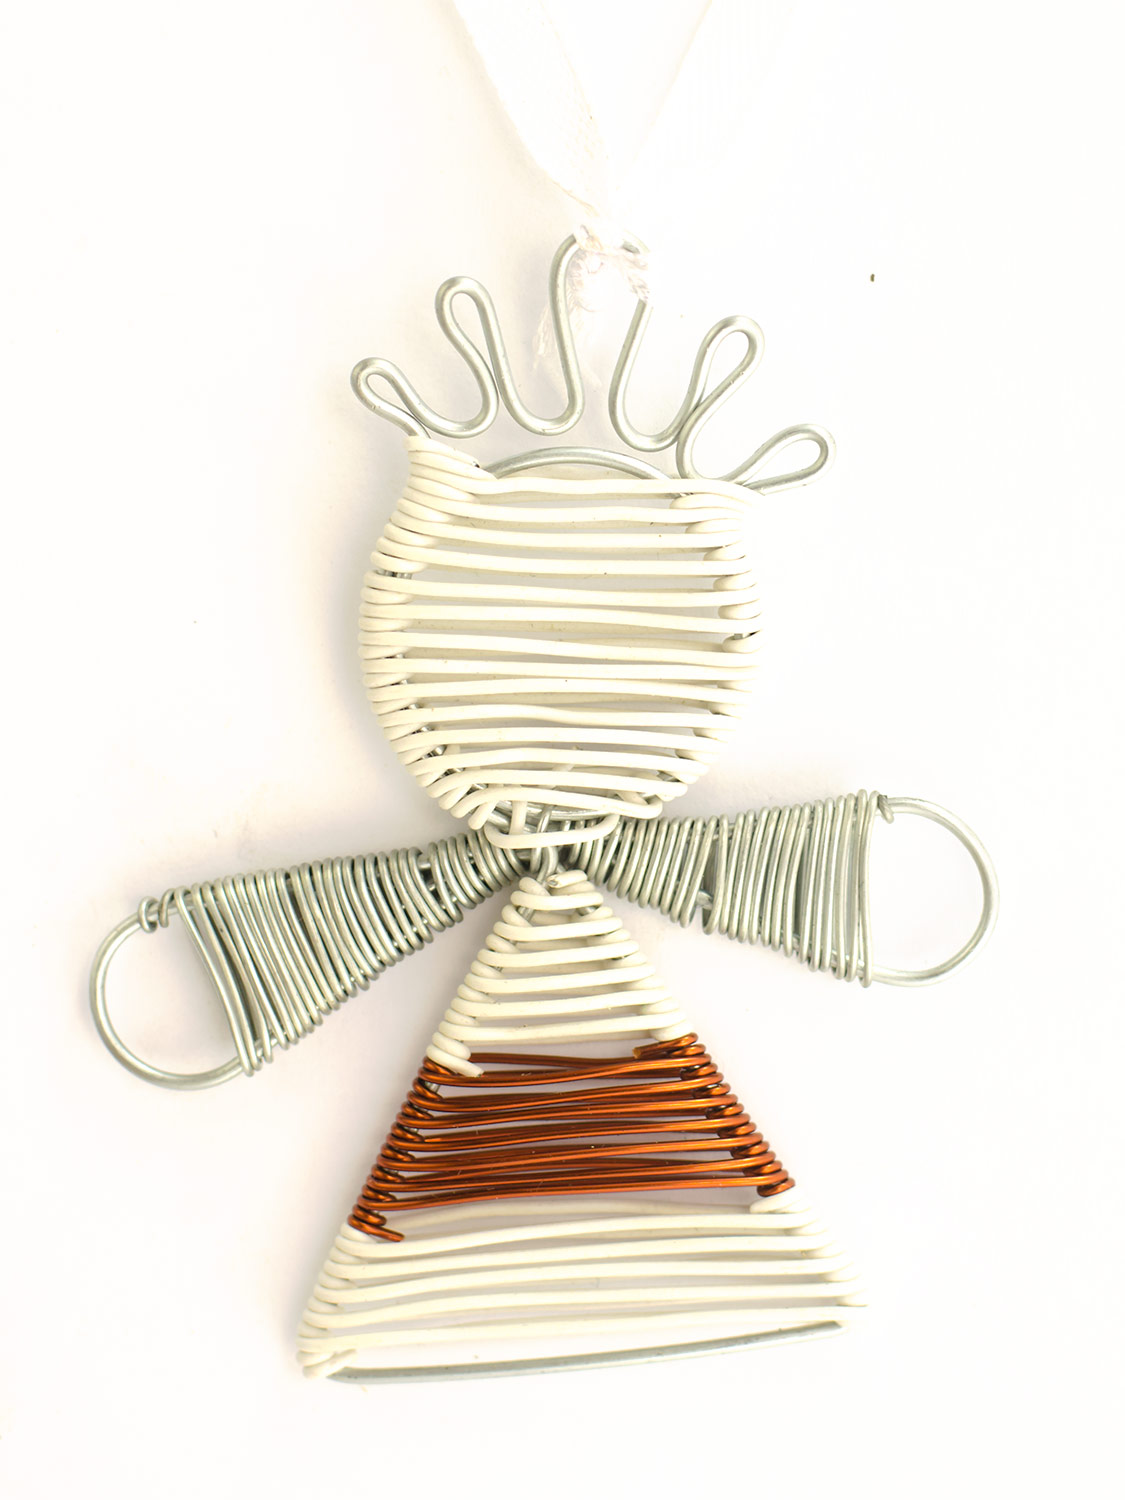 Scooby wire angel decoration